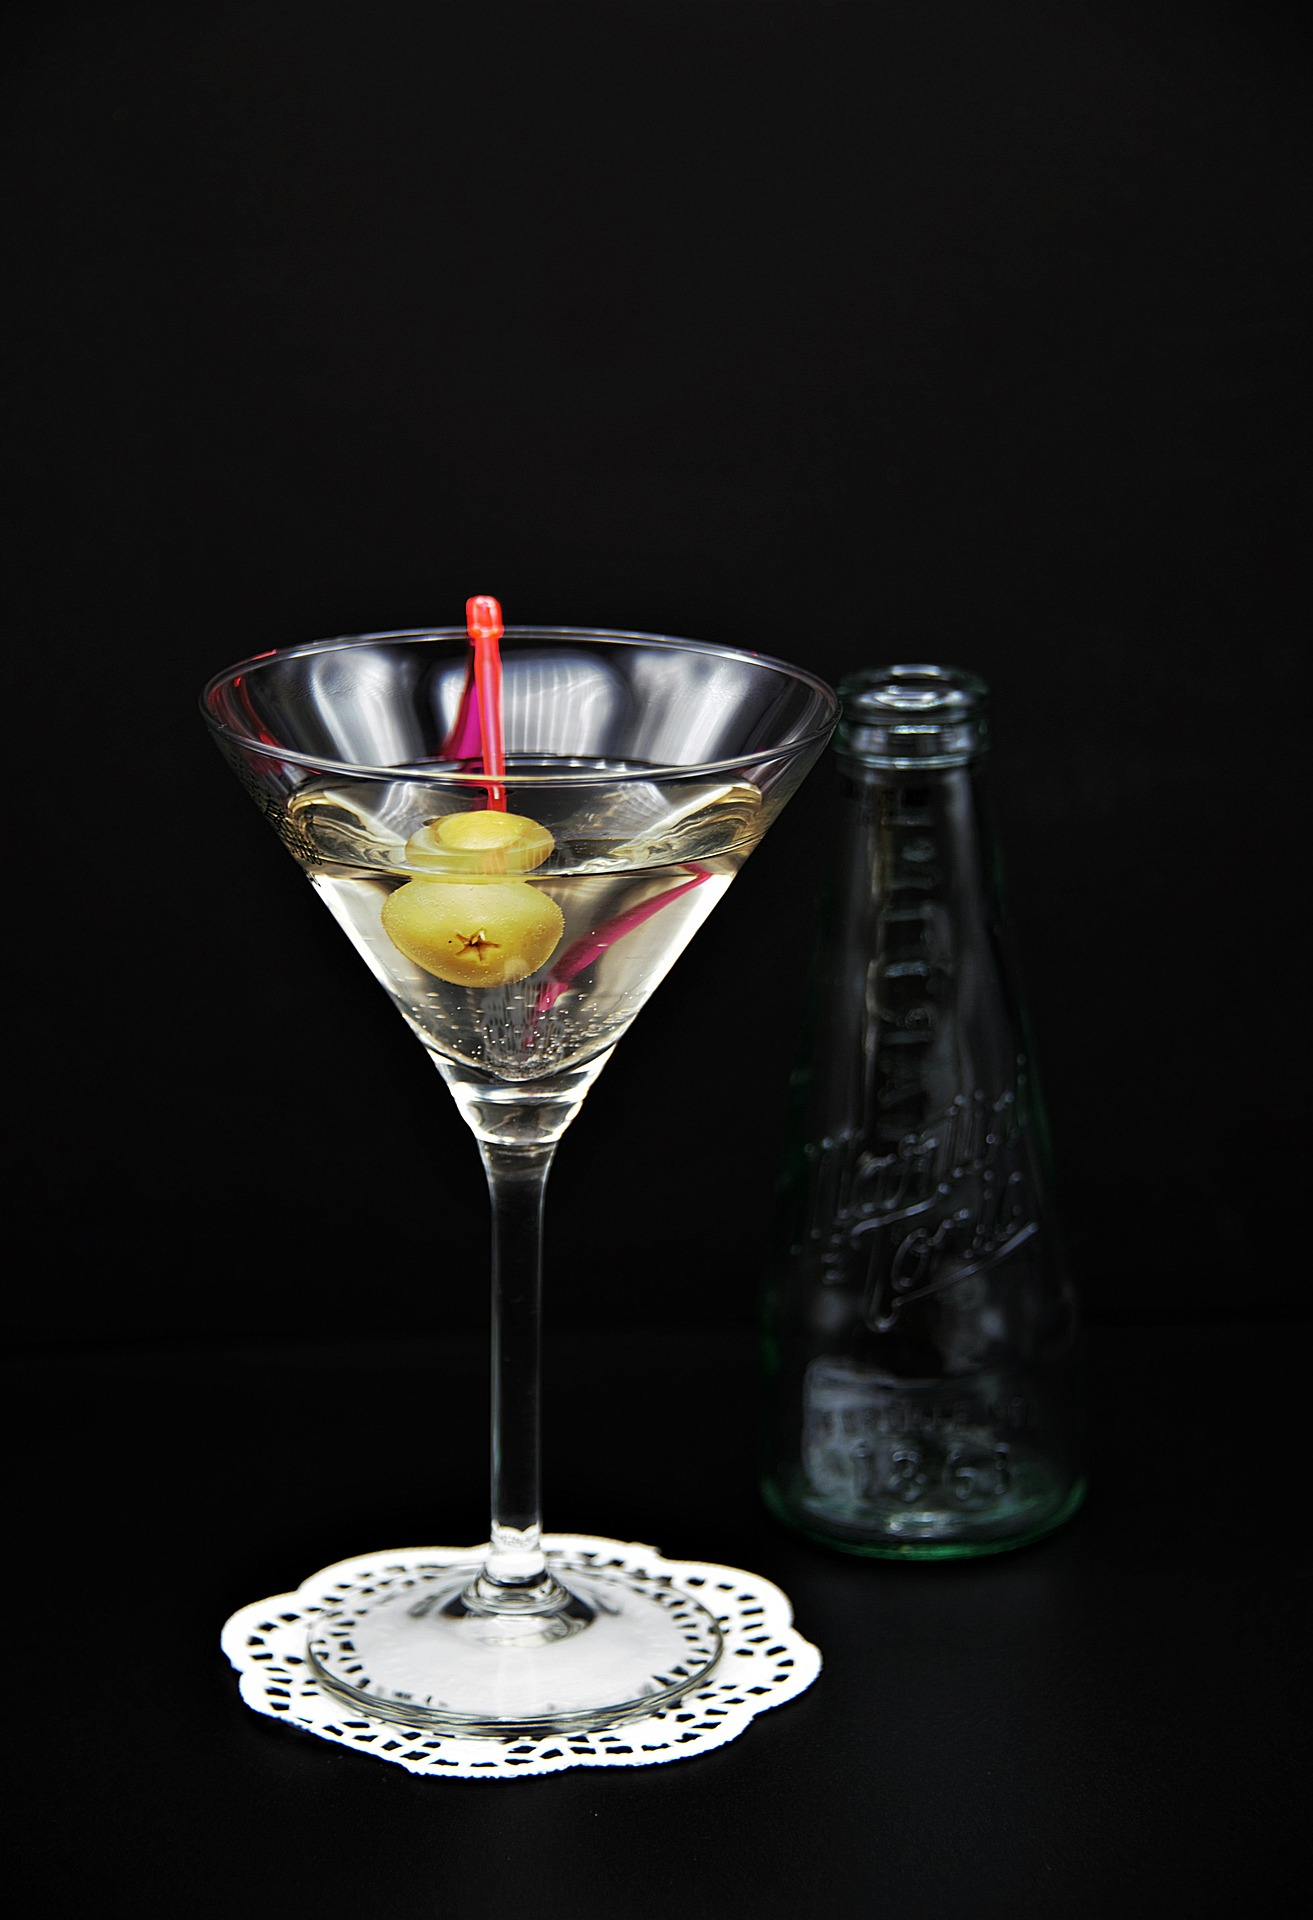 Martini: Shaken not stirred